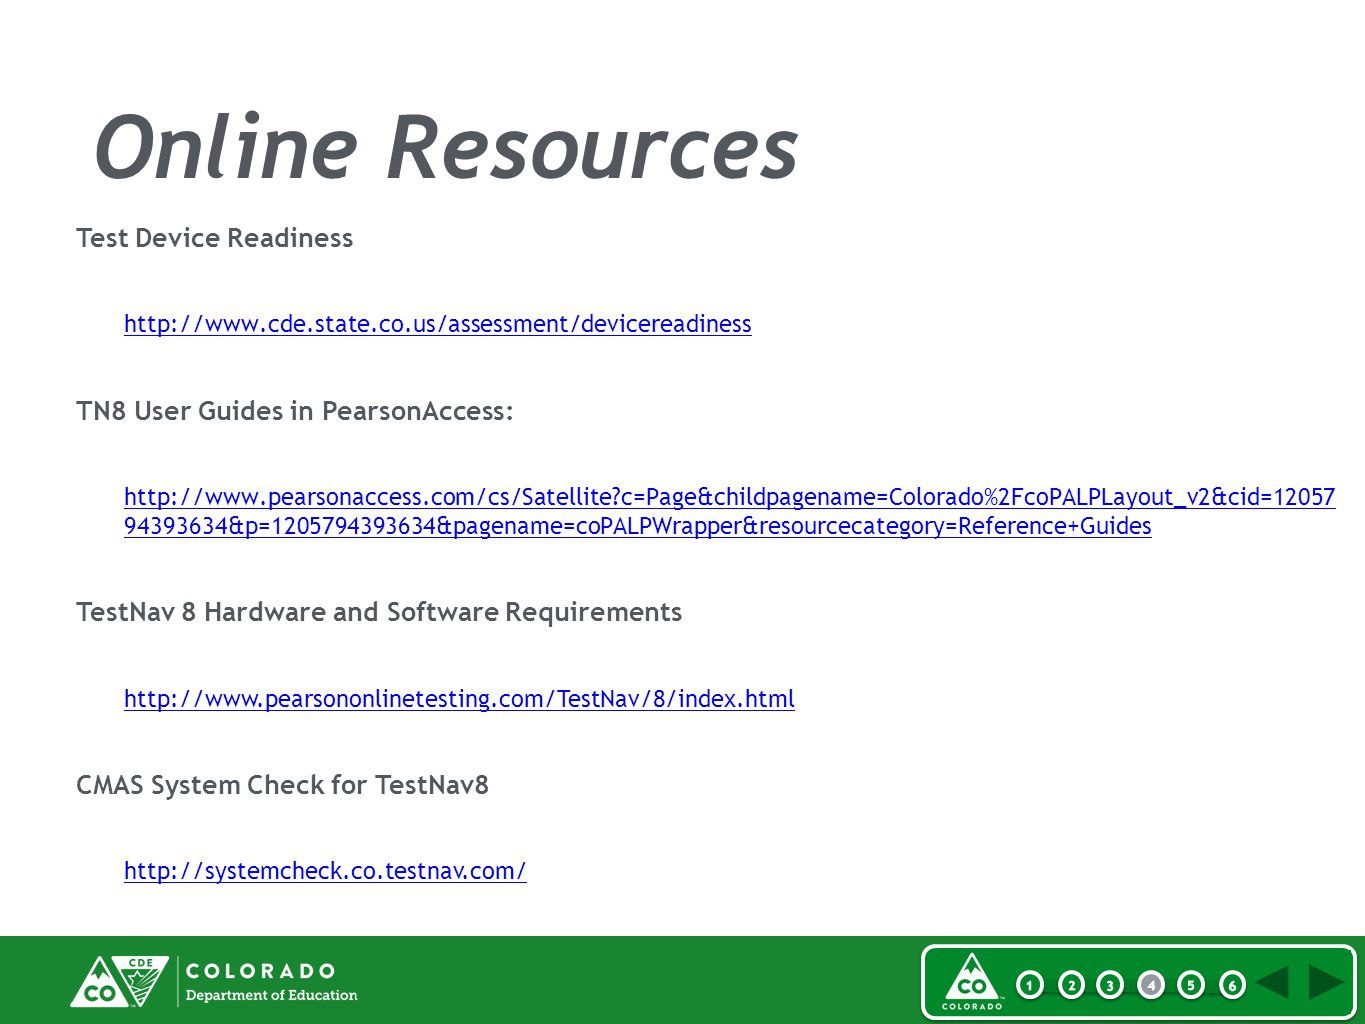 Online Resources Test Device Readiness http://www.cde.state.co.us/assessment/devicereadiness TN8 User Guides in PearsonAccess: http://www.pearsonaccess.com/cs/Satellite c=Page&childpagename=Colorado%2FcoPALPLayout_v2&cid=12057 94393634&p=1205794393634&pagename=coPALPWrapper&resourcecategory=Reference+Guides TestNav 8 Hardware and Software Requirements http://www.pearsononlinetesting.com/TestNav/8/index.html CMAS System Check for TestNav8 http://systemcheck.co.testnav.com/